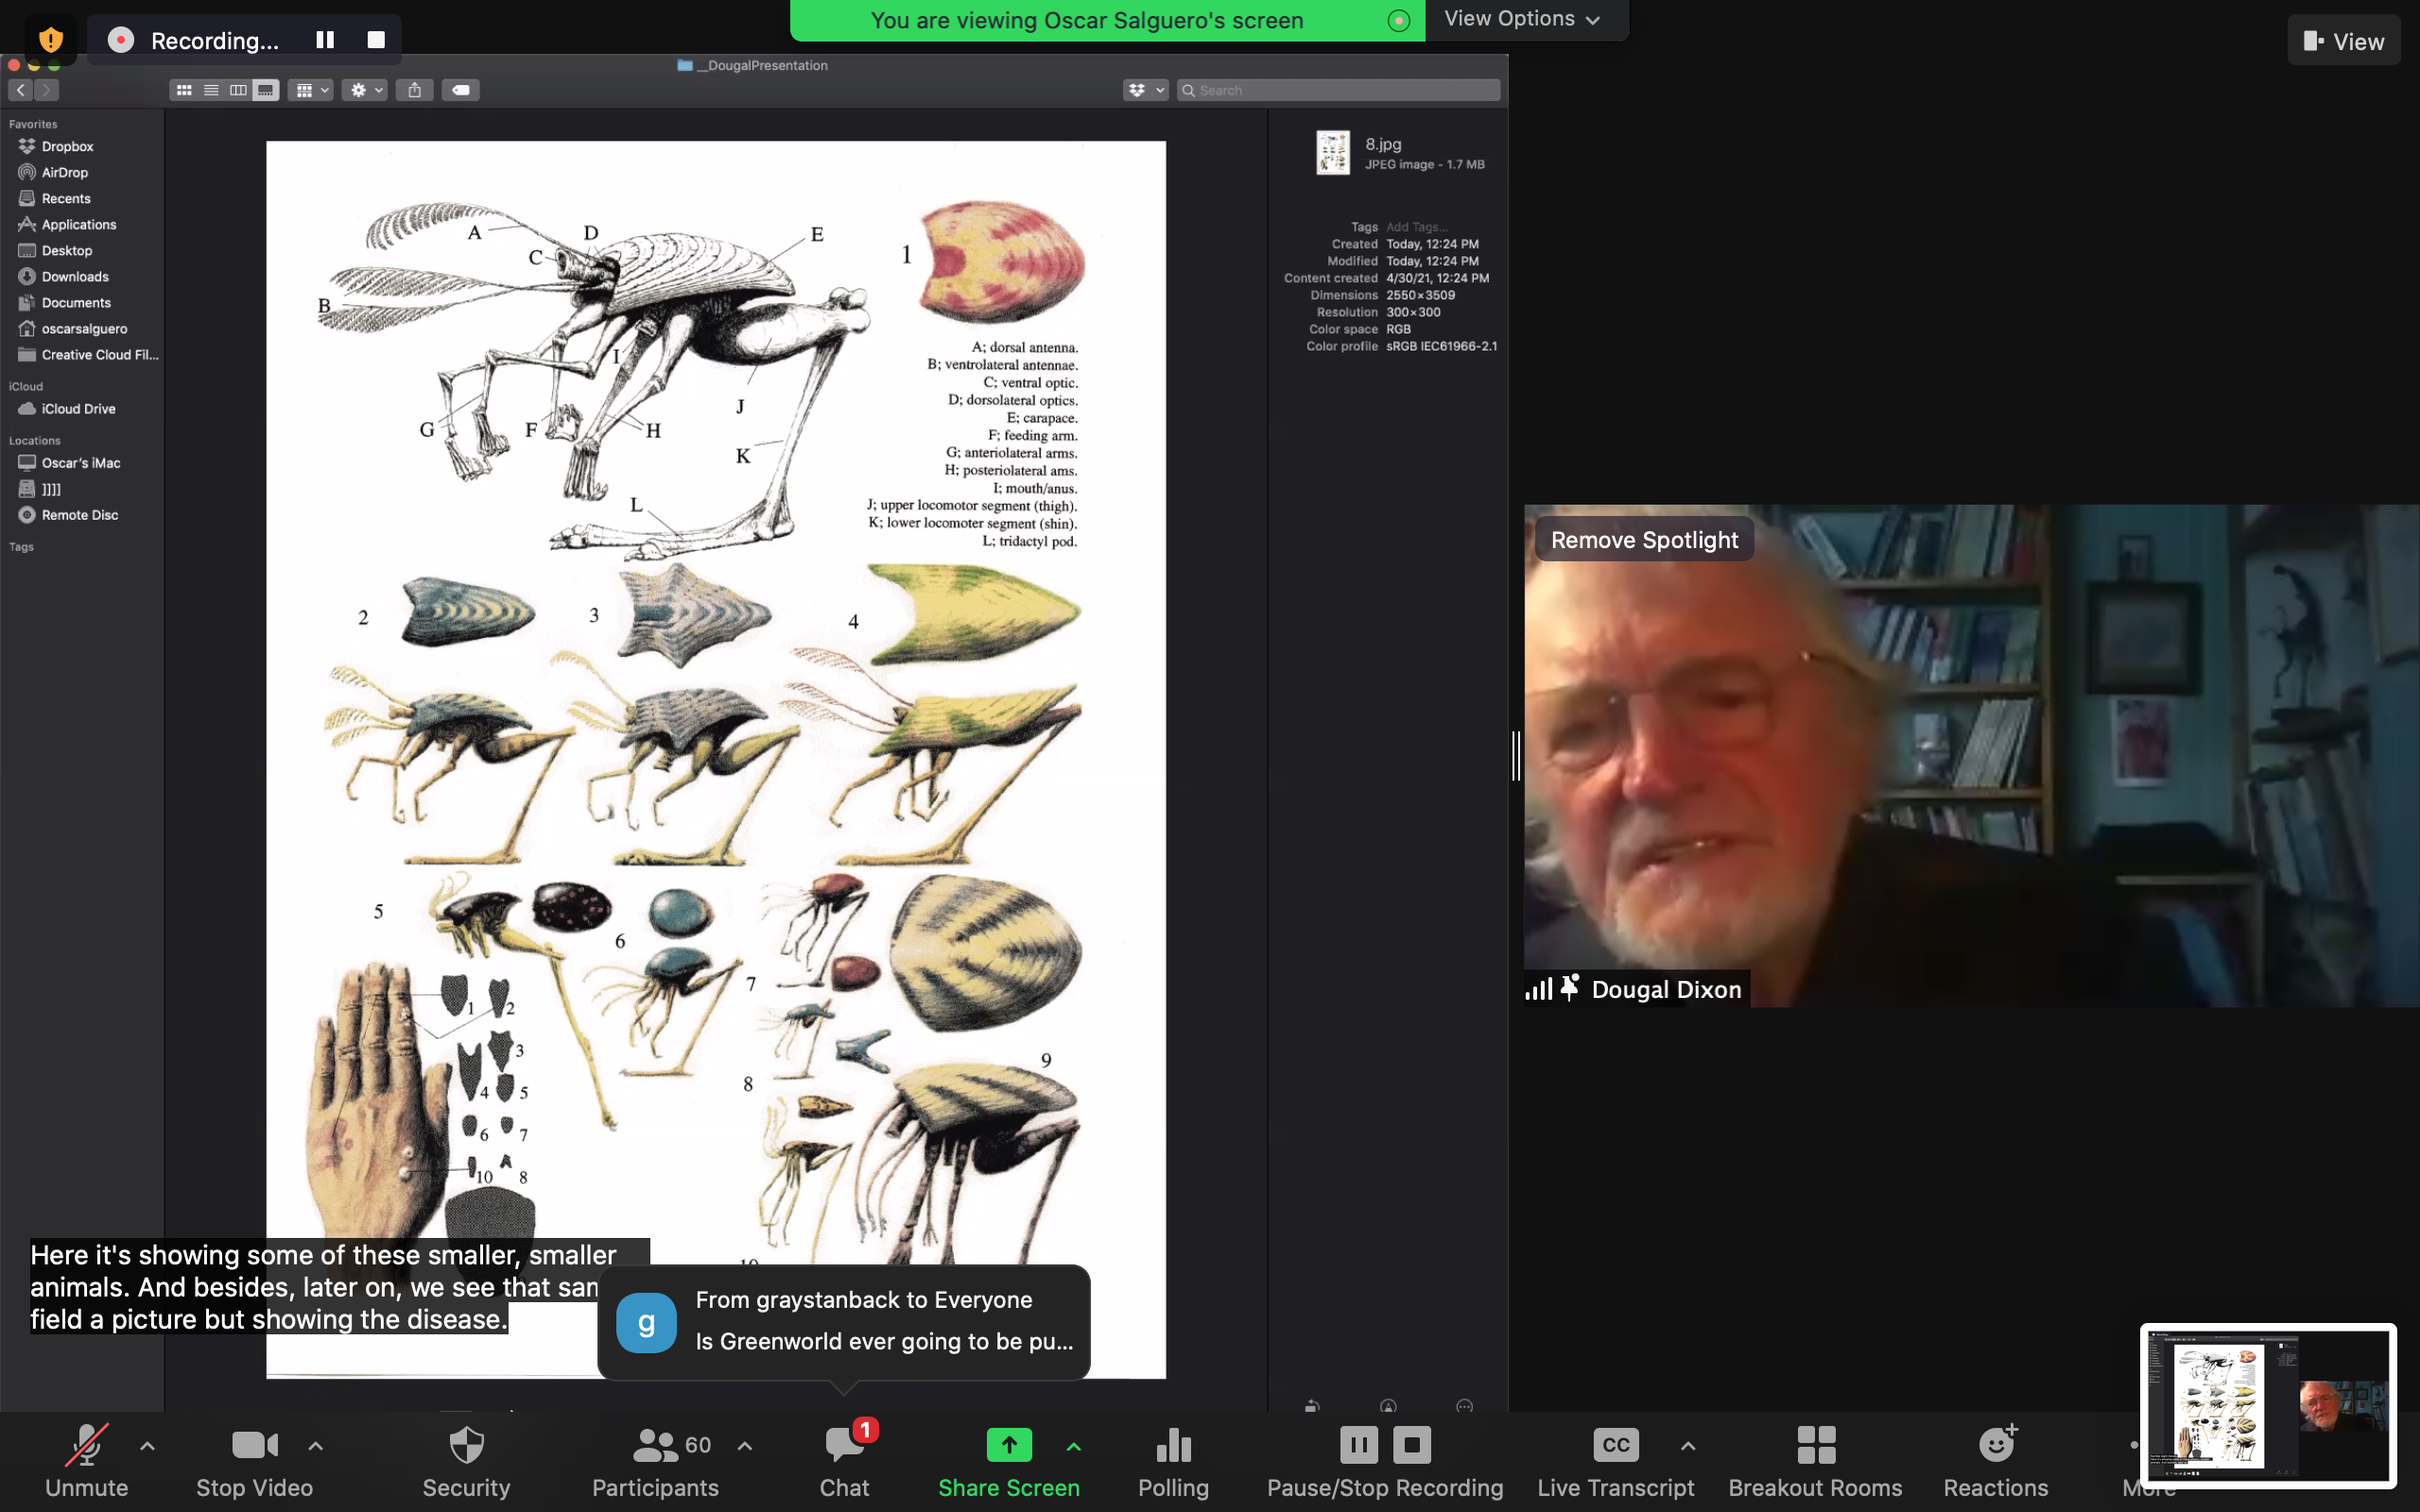 Screen Capture of Dougal Dixon and an image of speculative species